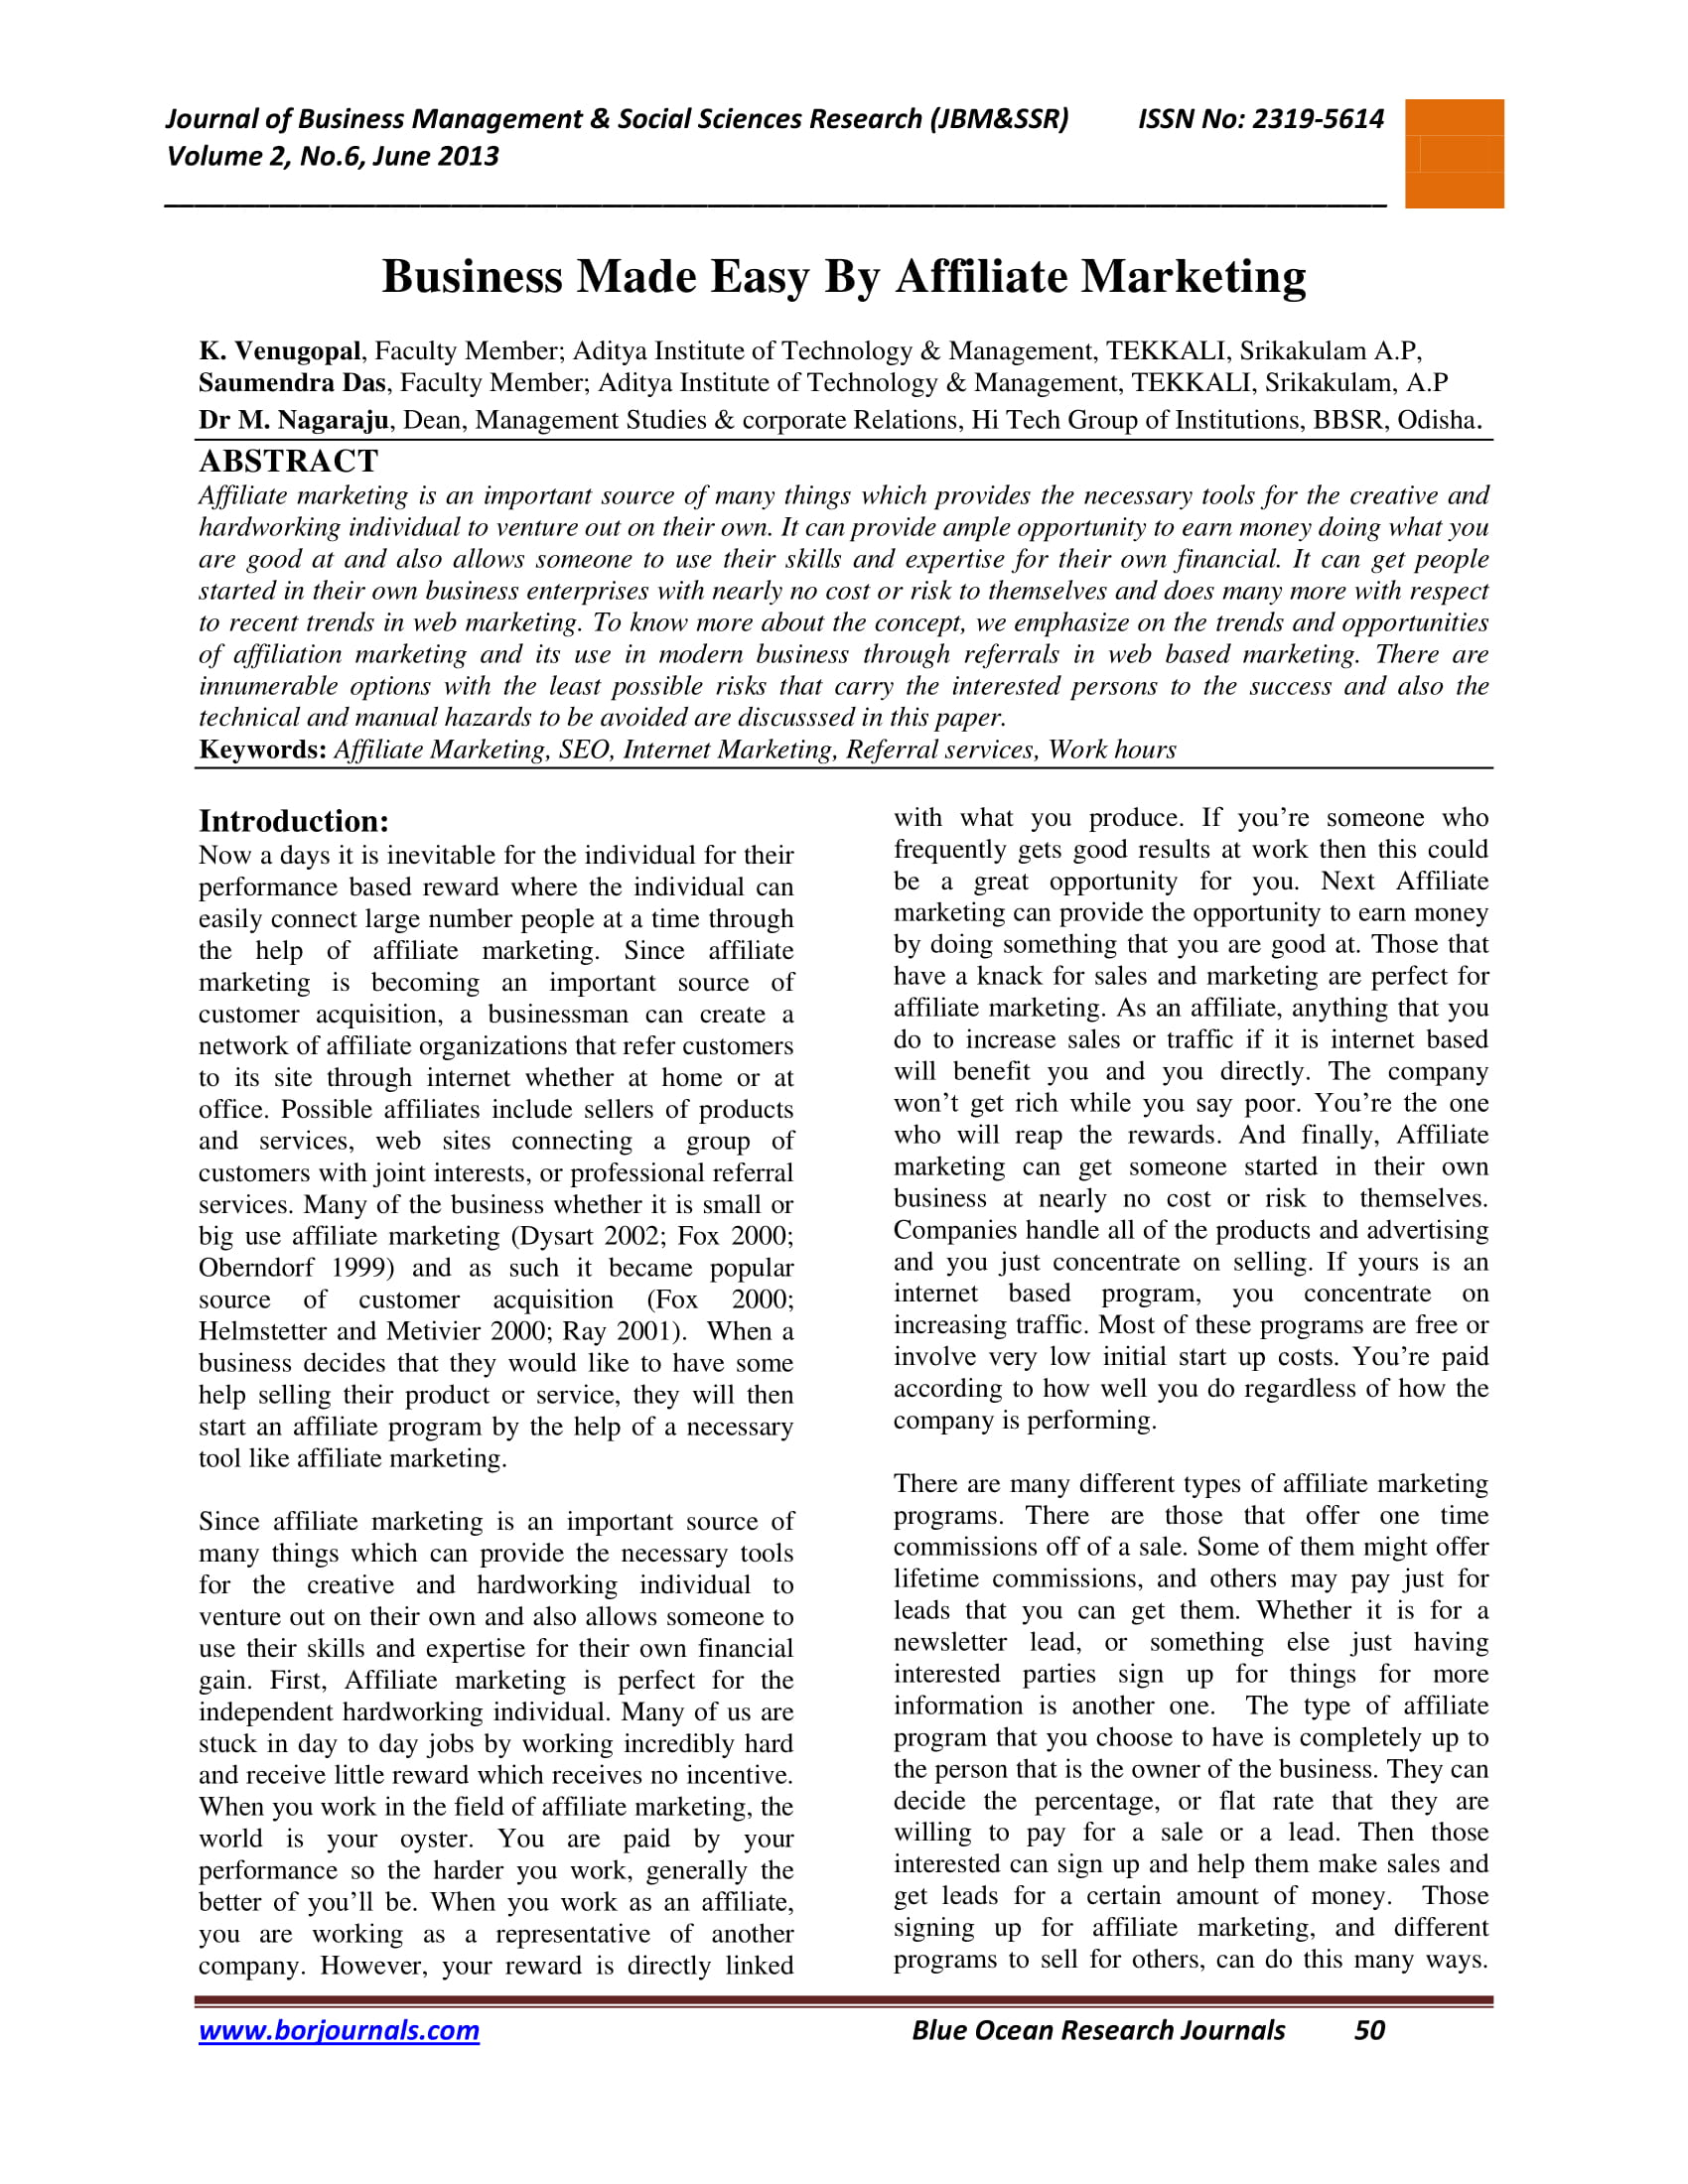 affiliate marketing introduction and example 1